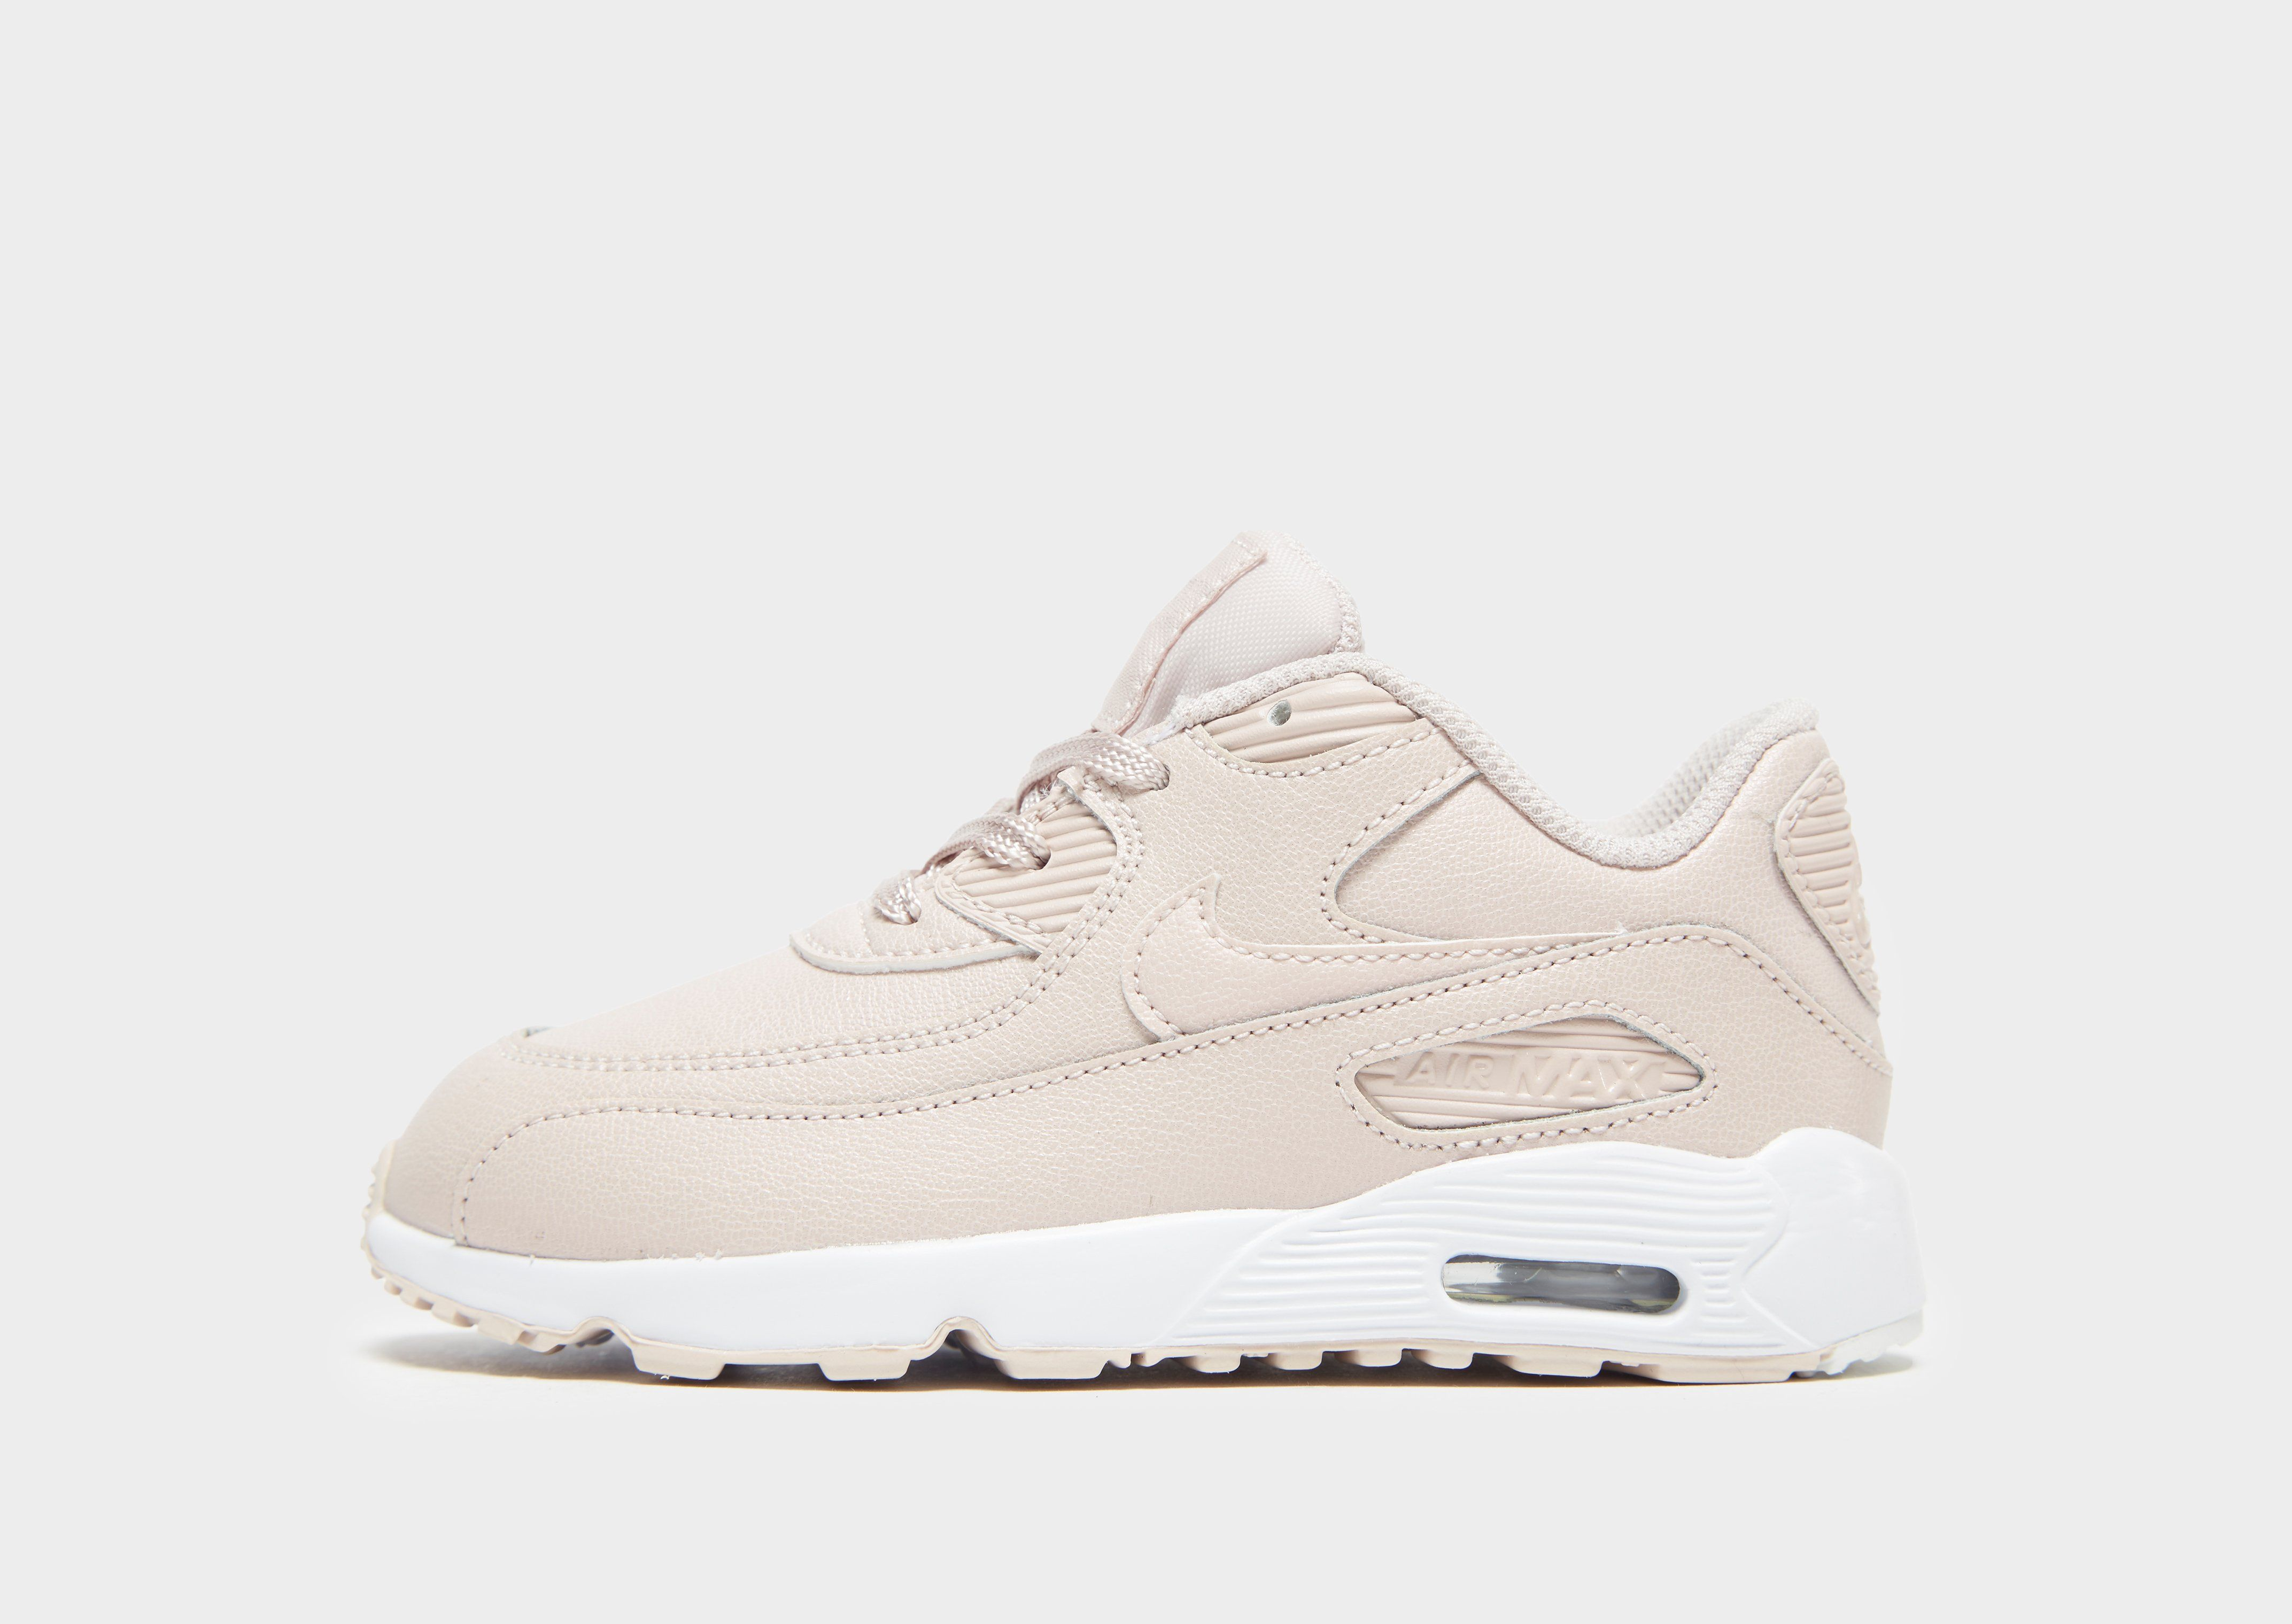 new style a00ea 77ffe Nike Air Max 90 Leather Toddler Shoe | JD Sports